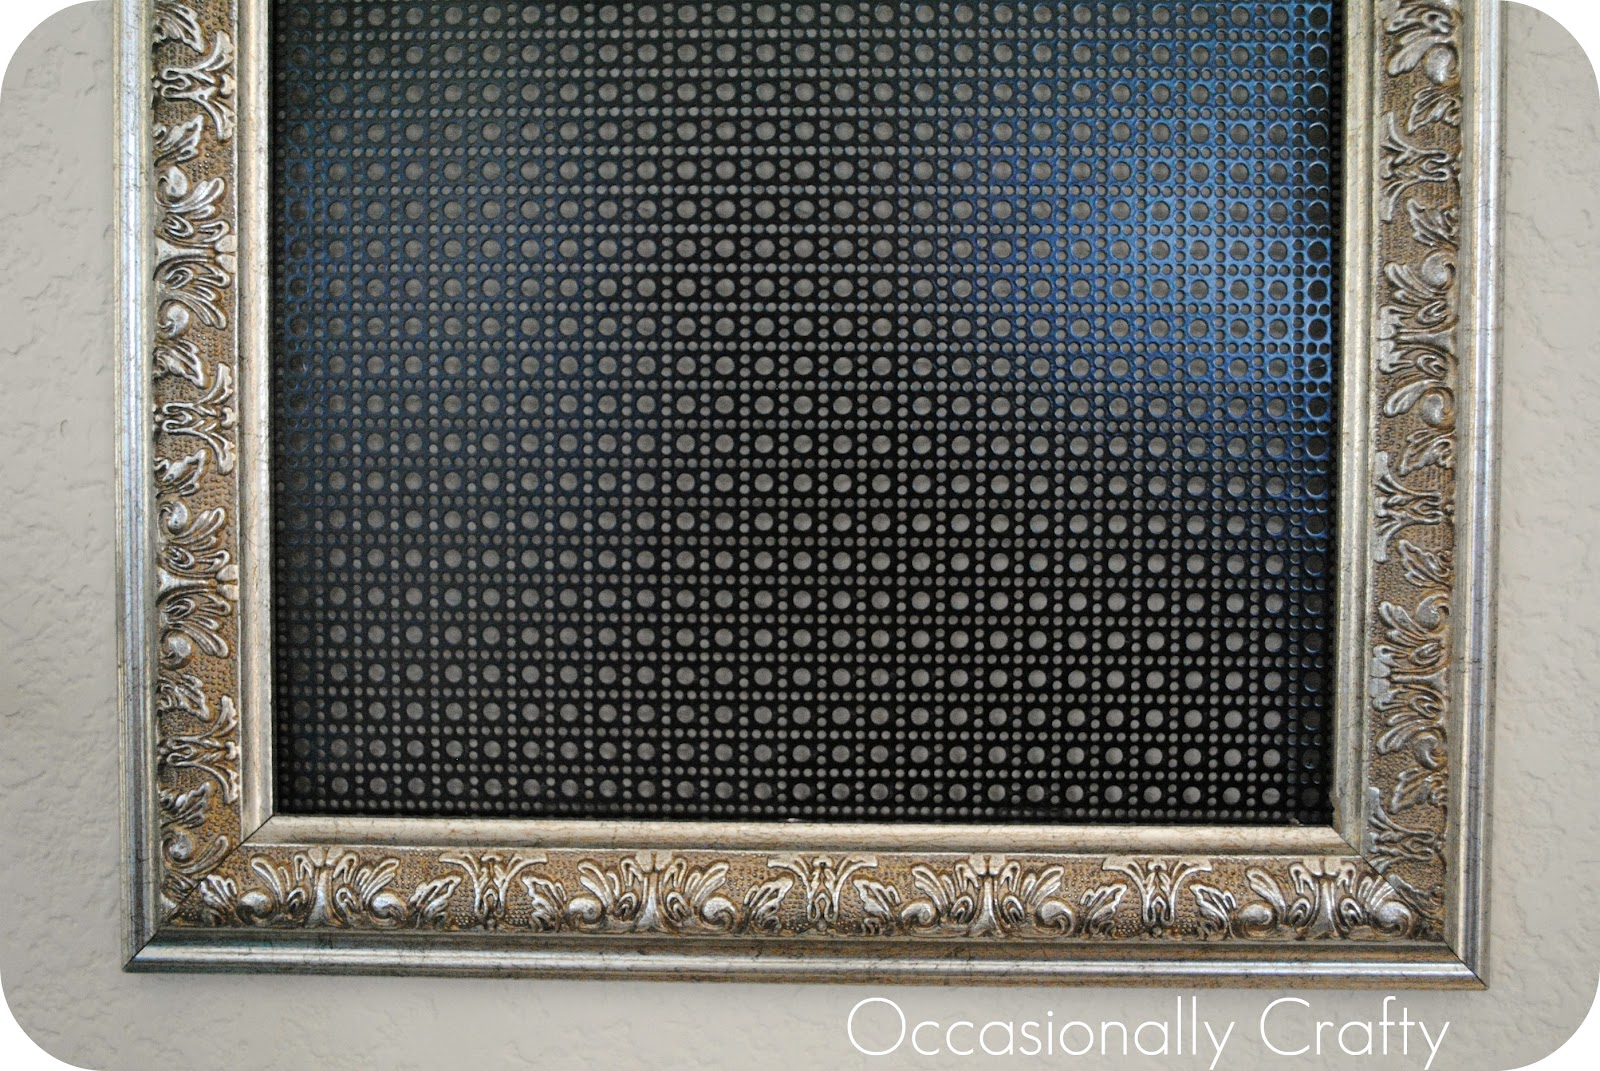 Thrifted Frame to Earring Holder | Occasionally Crafty: Thrifted ...